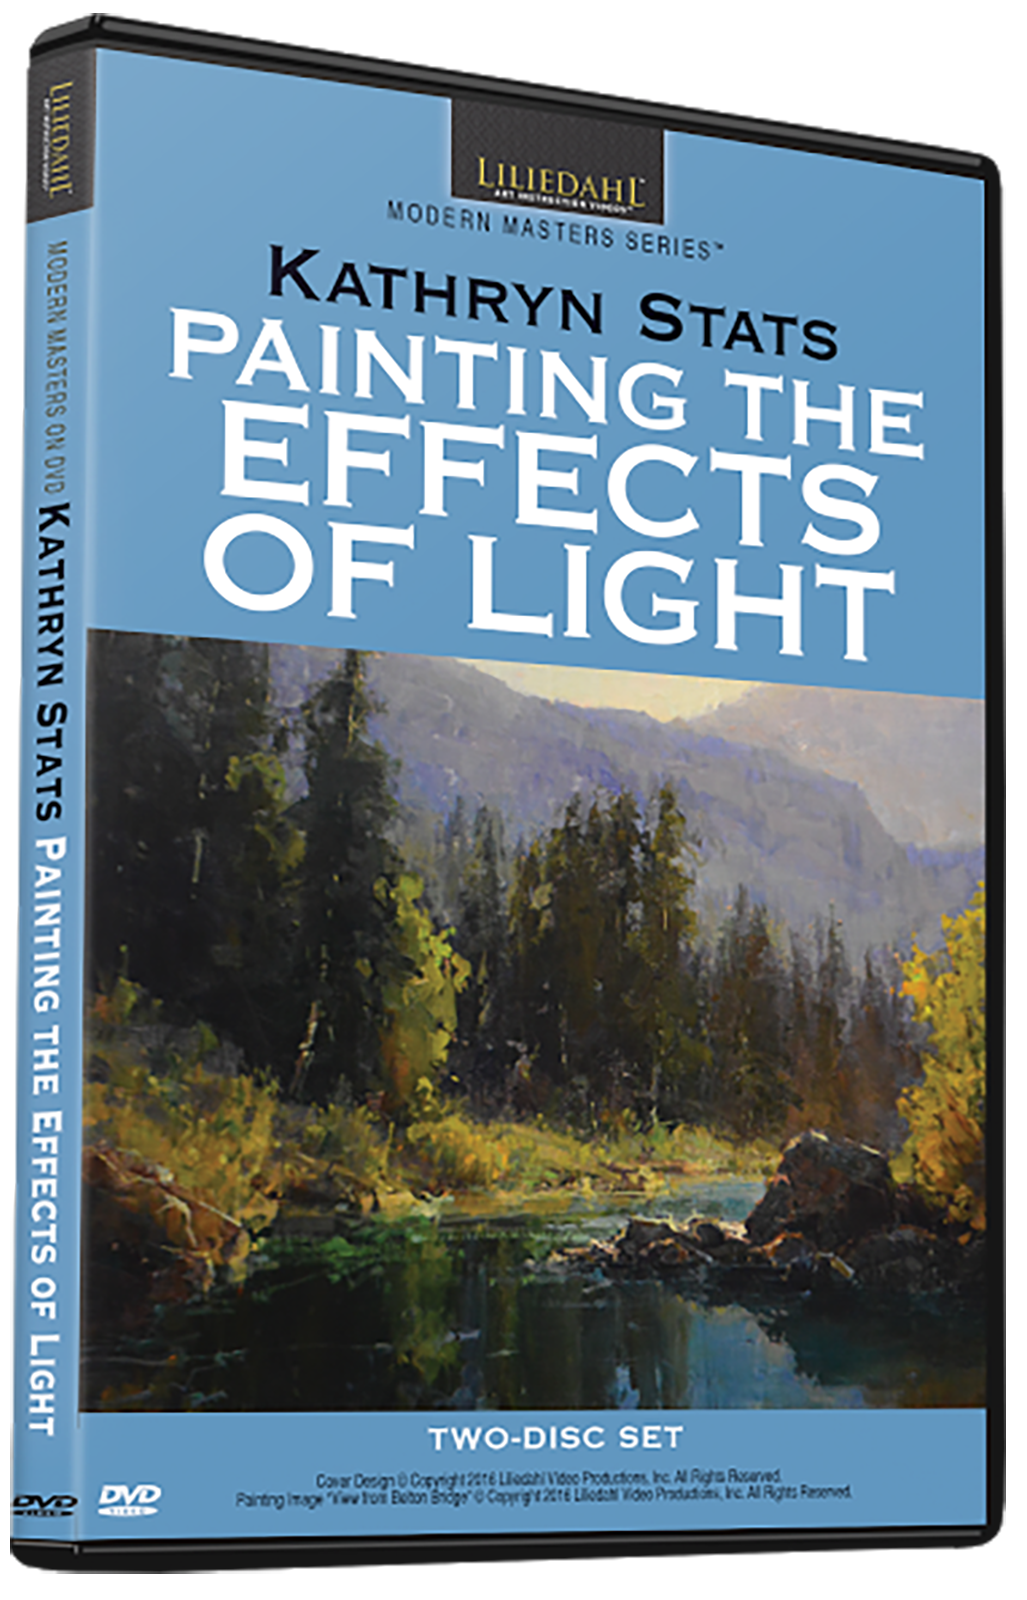 Kathryn Stats: Painting The Effects Of Light